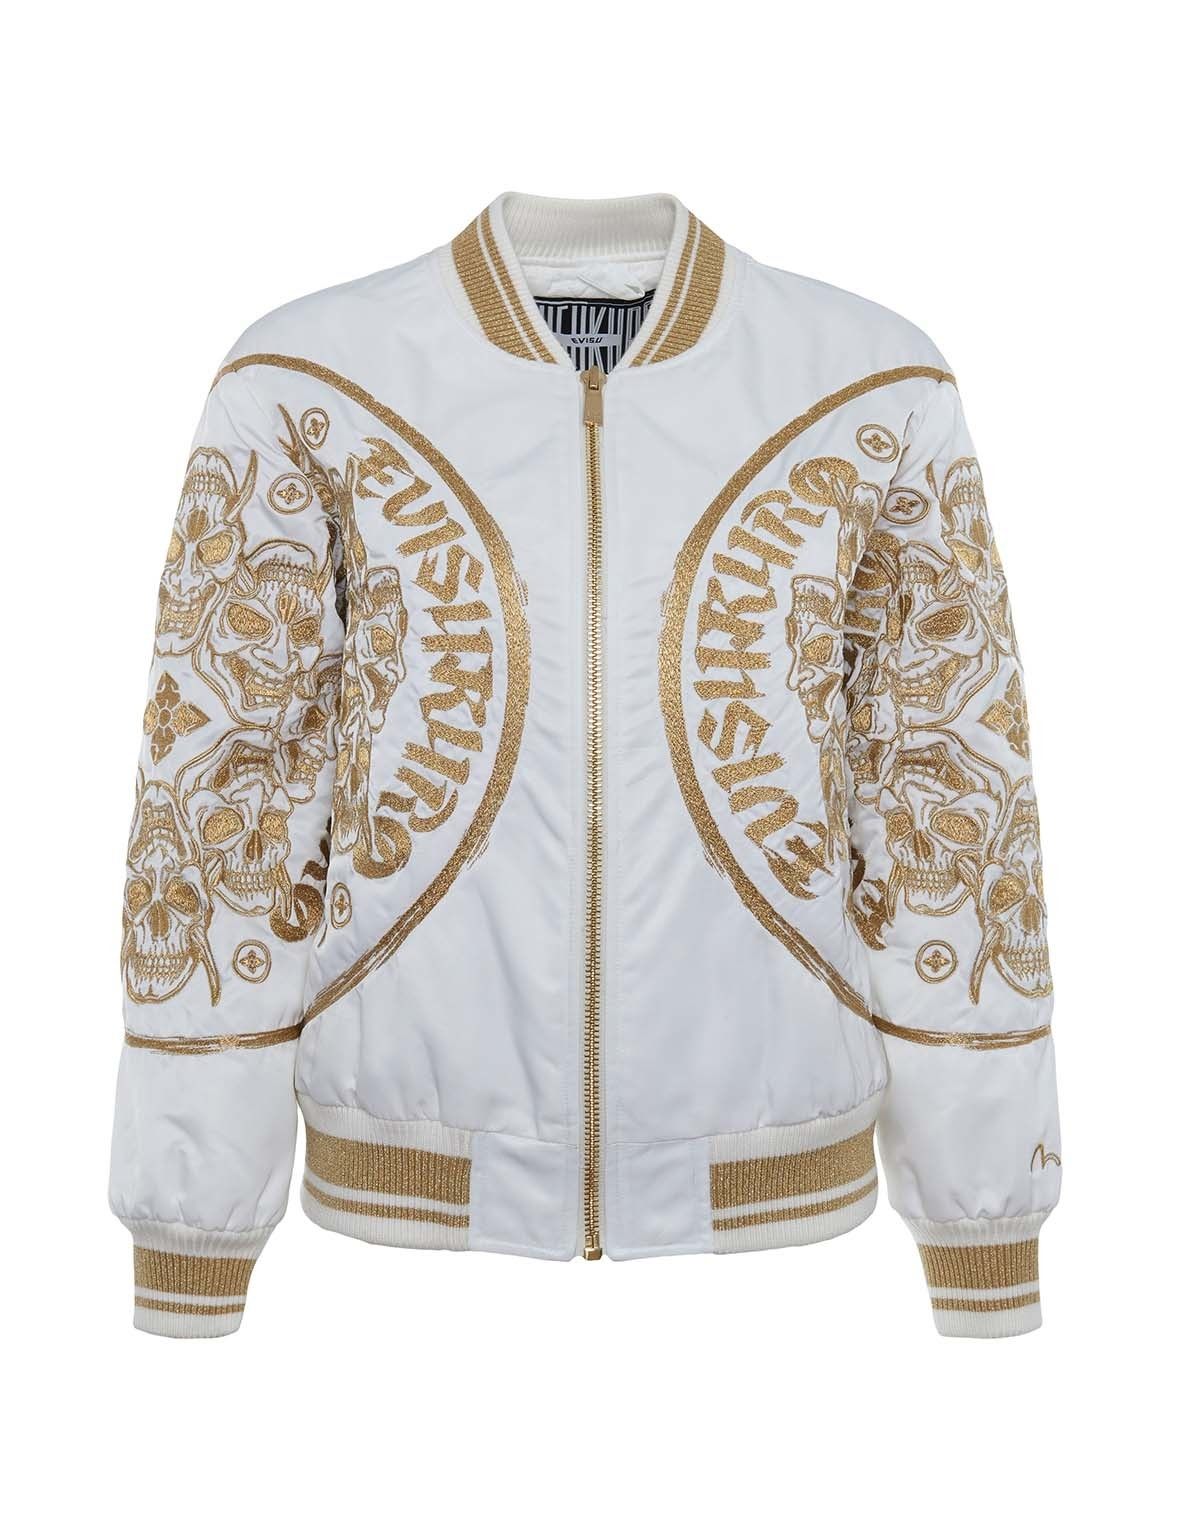 EVISU Padded Bomber Jacket With Hannya Skull Gold Embroidery